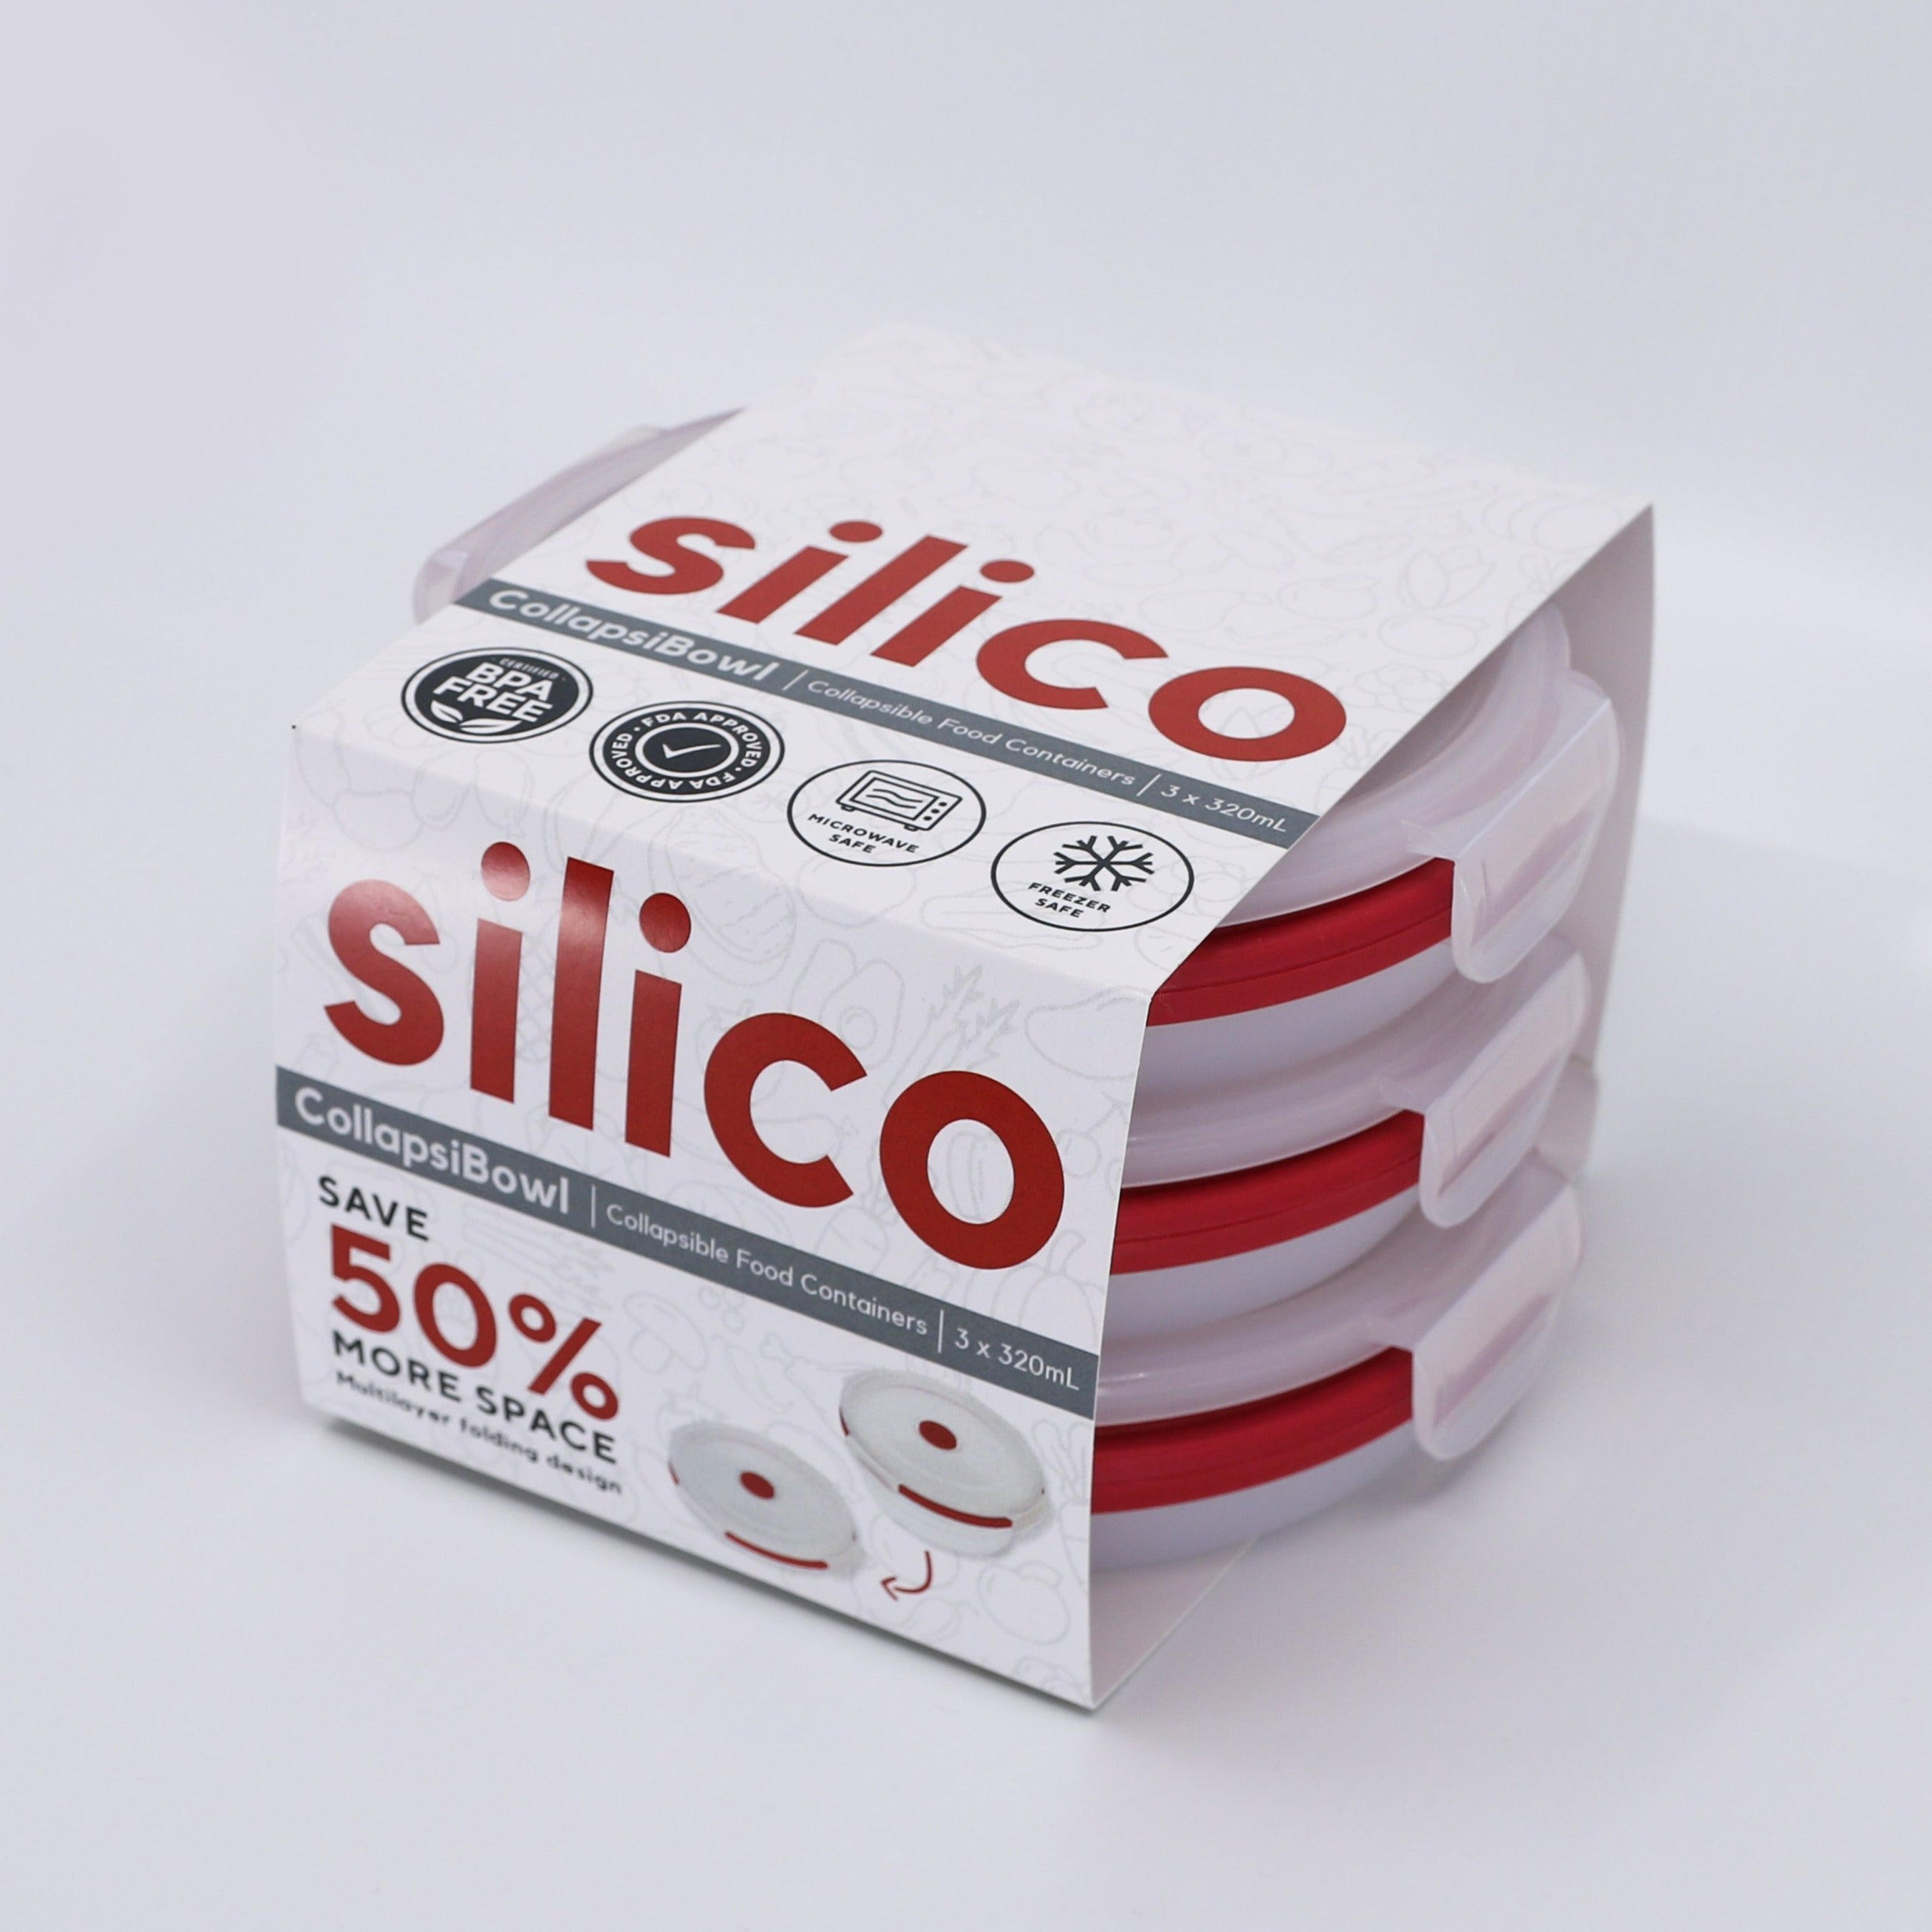 Silico CollapsiBowl - Small Set of 3 (320ml)